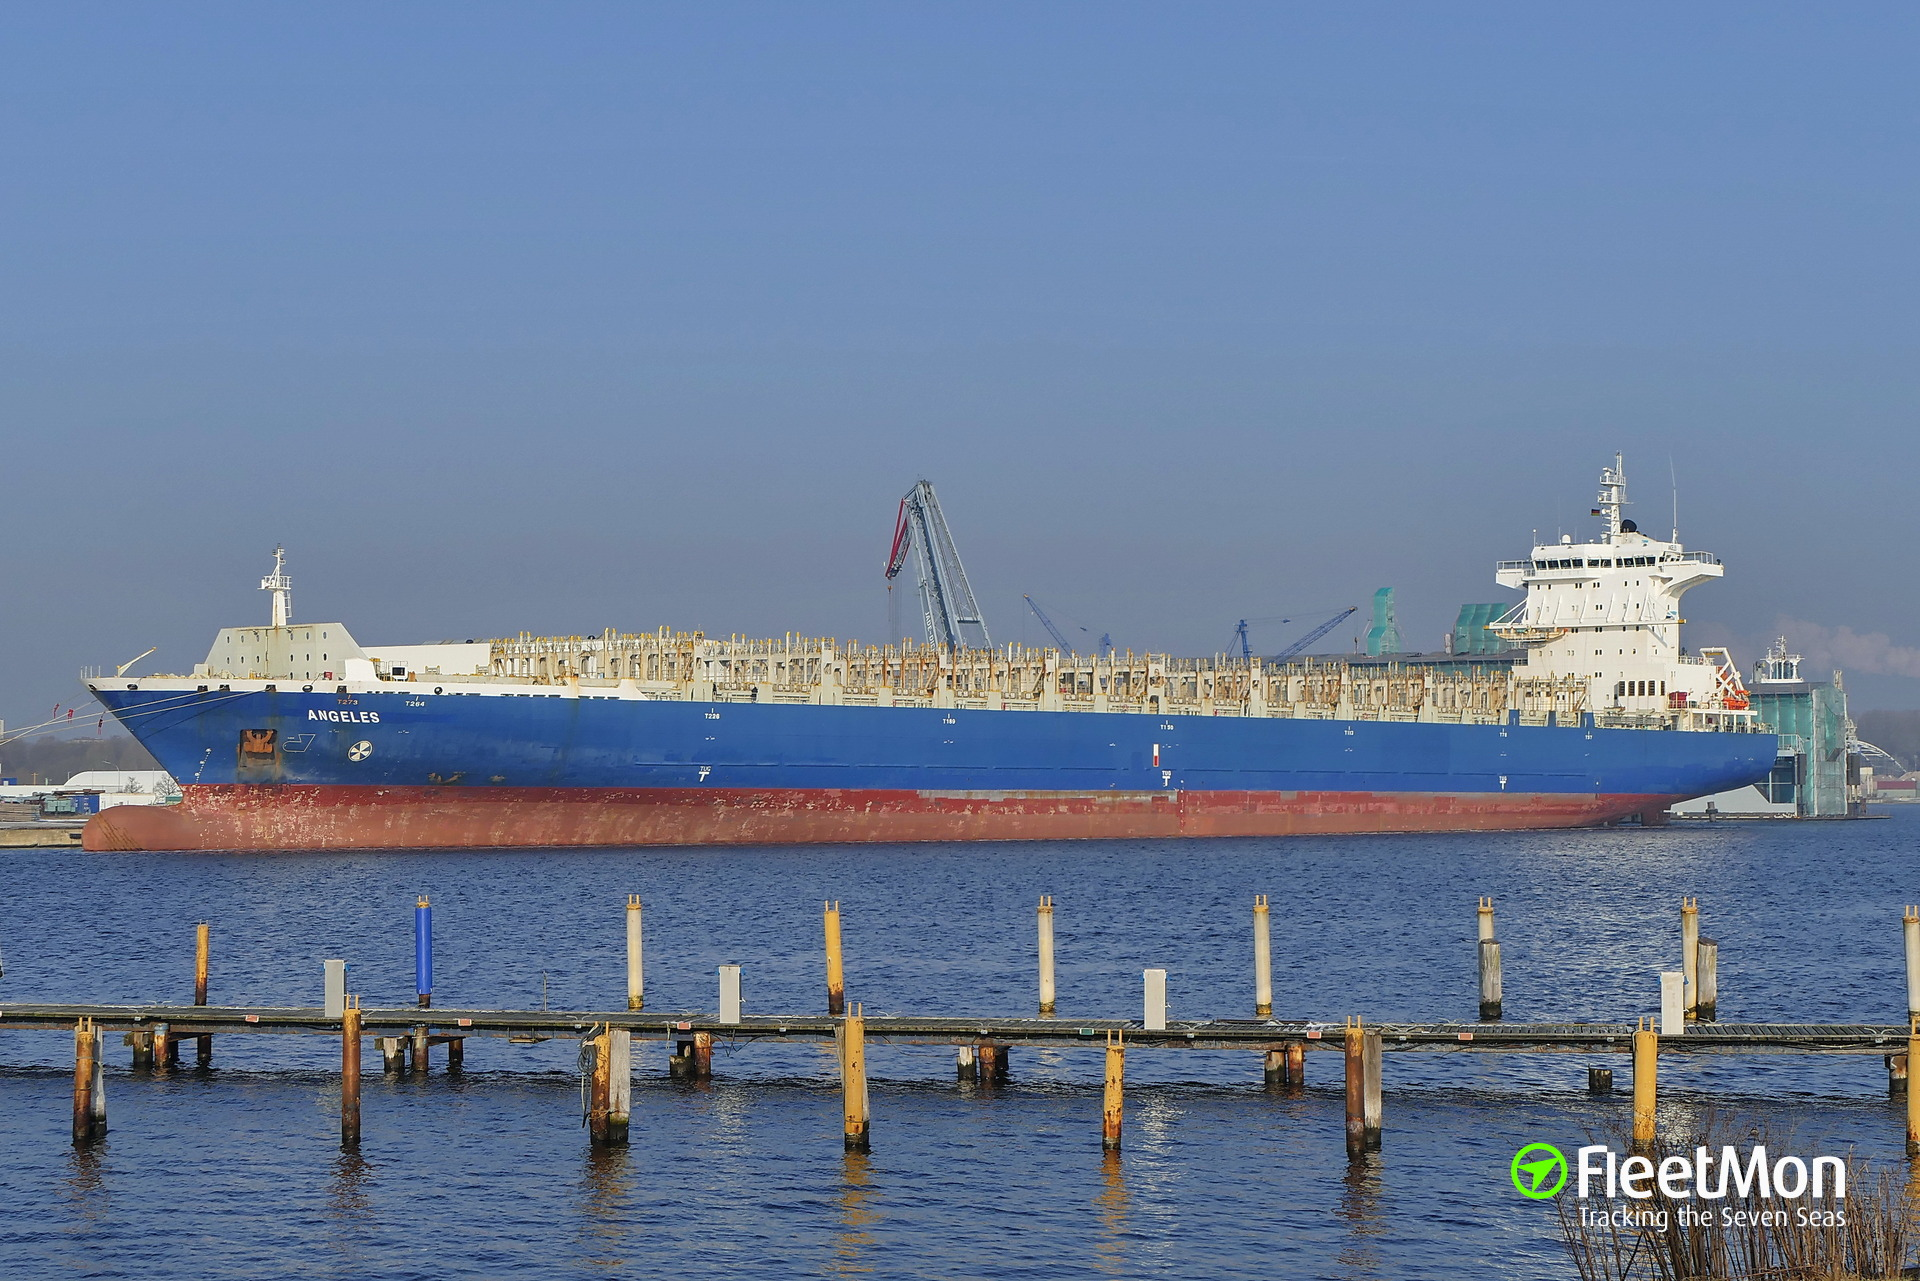 Container ship aground? Update aground confirmed.